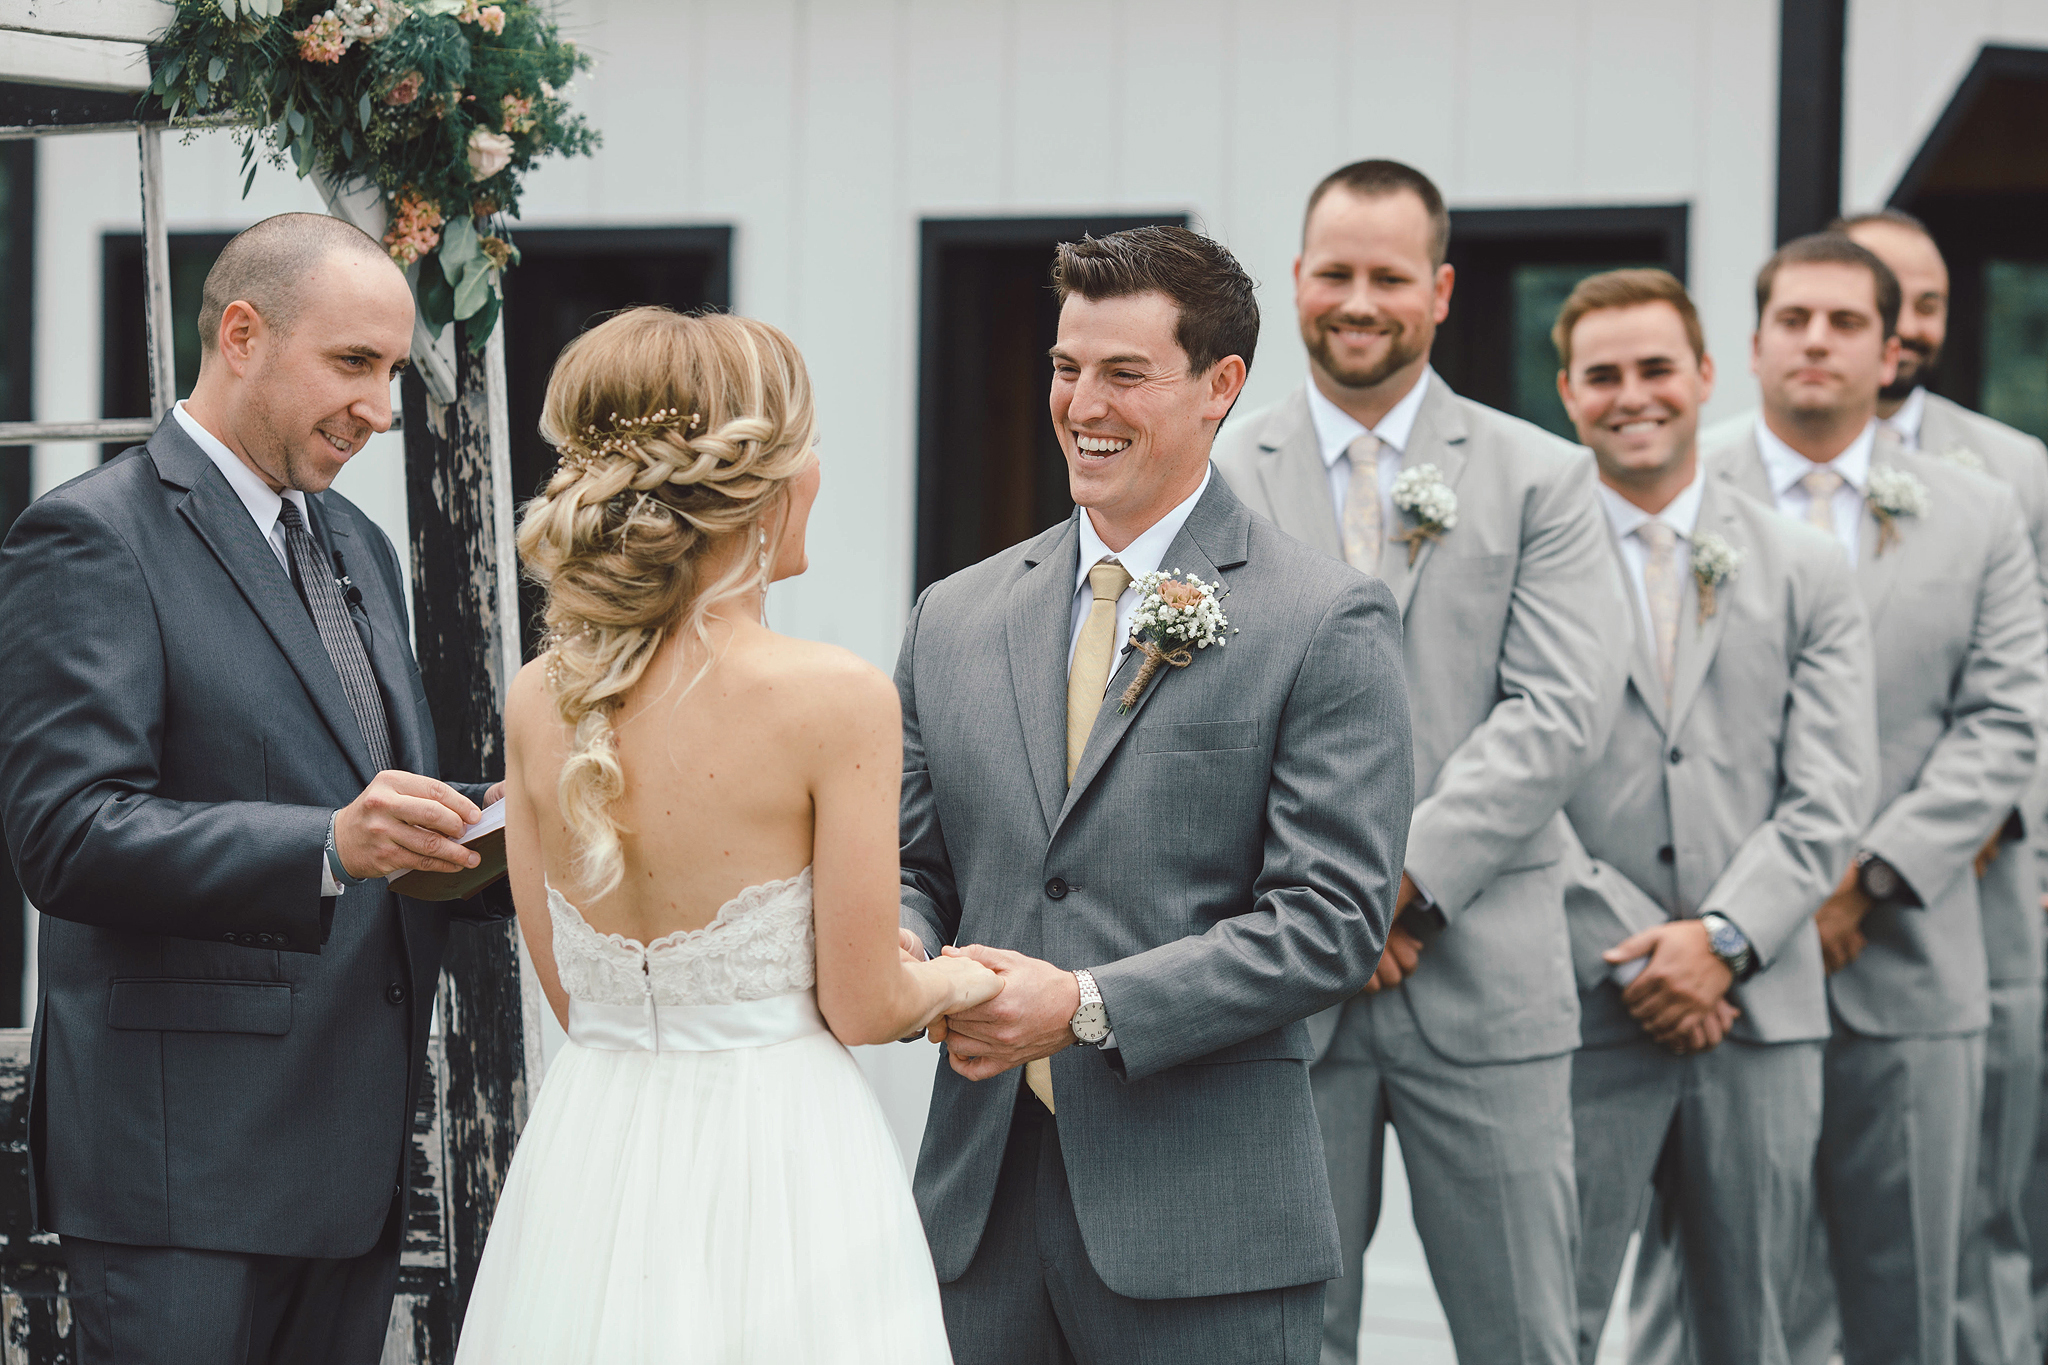 Cincinnati-Dayton-Wedding-Photographer-Dry-Ridge-KY-Josephina-Photography-131.jpg